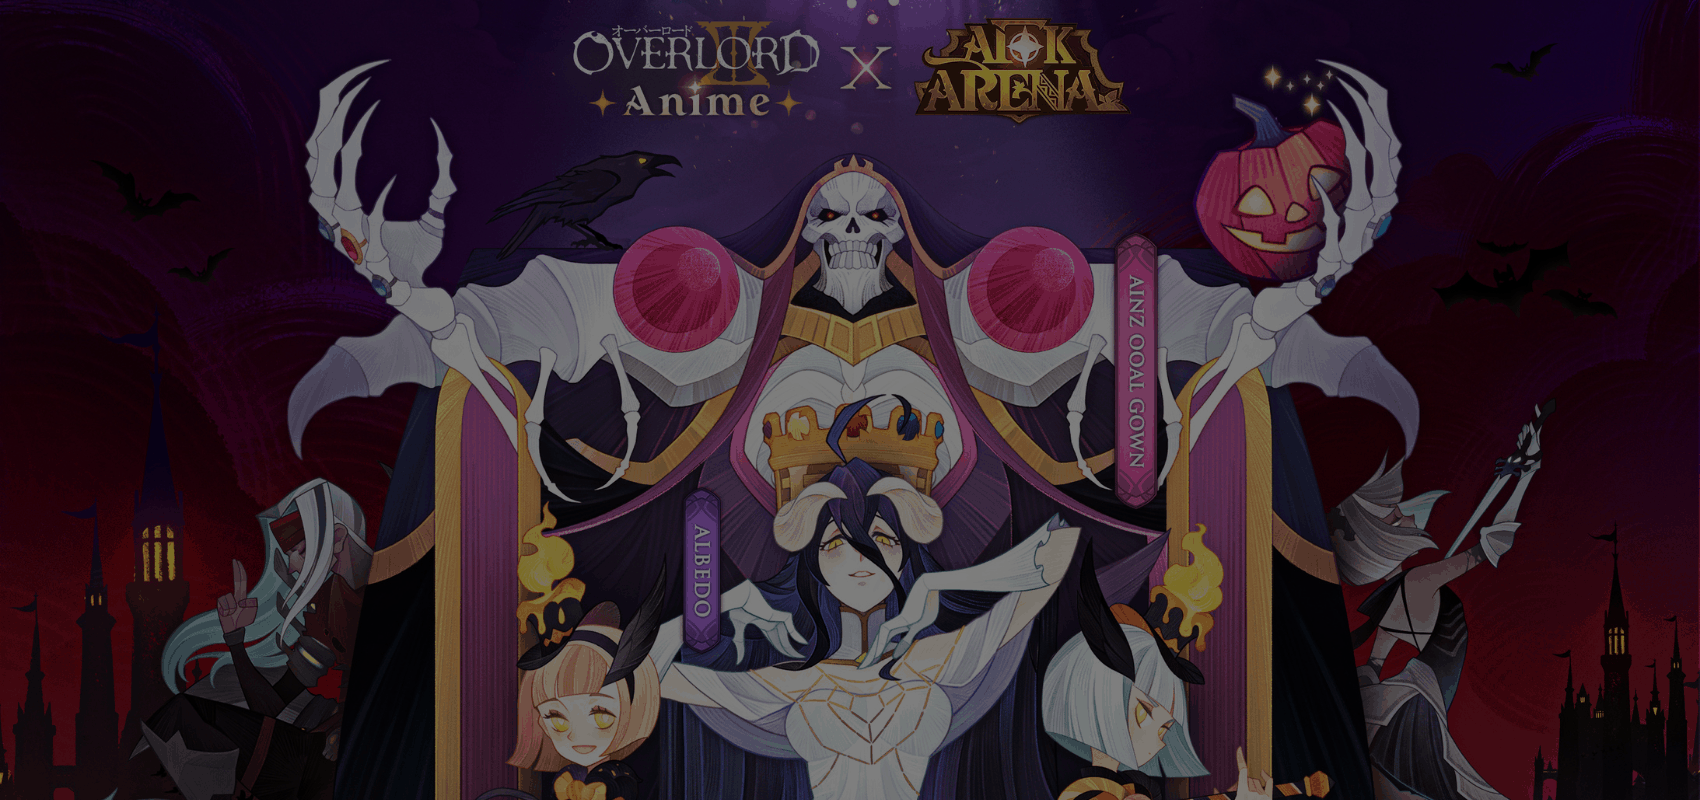 Overlord animated characters Ainz Ooal Gown and Albedo join AFK Arena for its Halloween event spooktacular